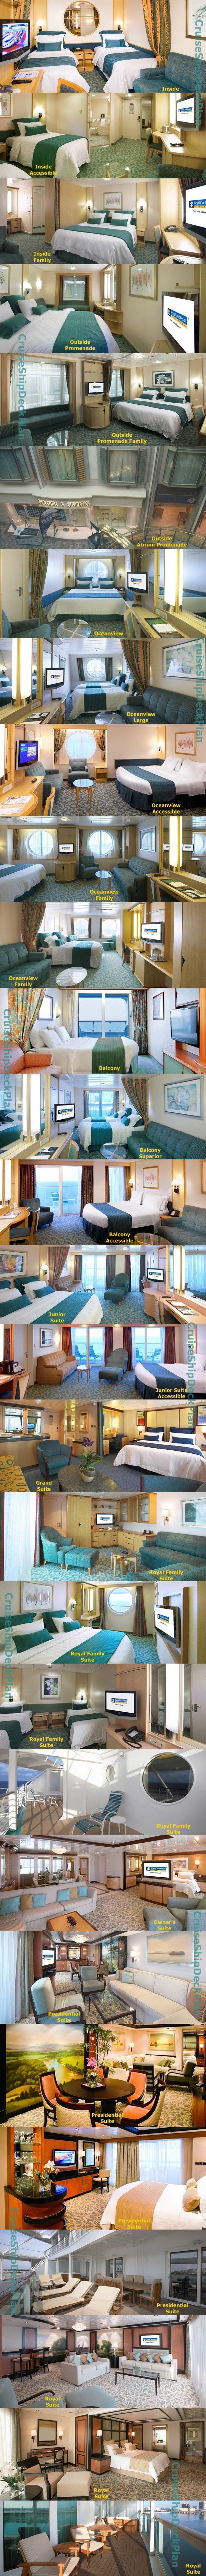 Royal Caribbean Freedomof the Seas cabins and suites photos